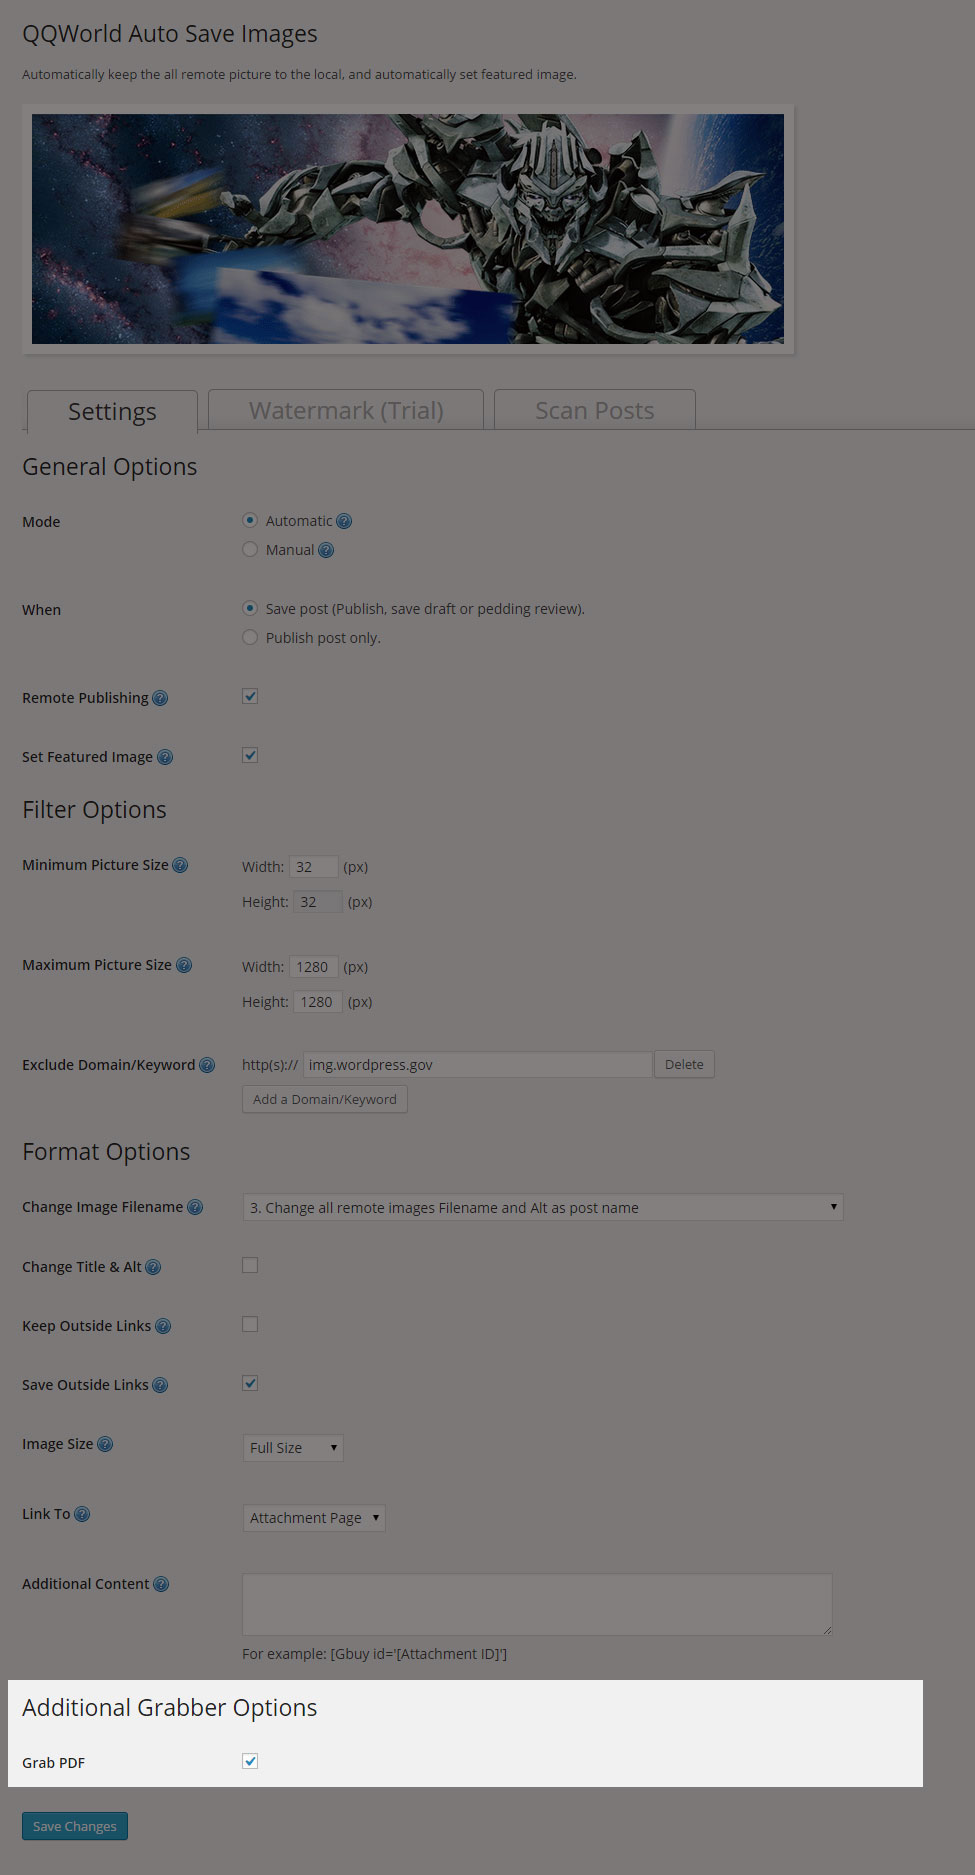 User interface - Settings